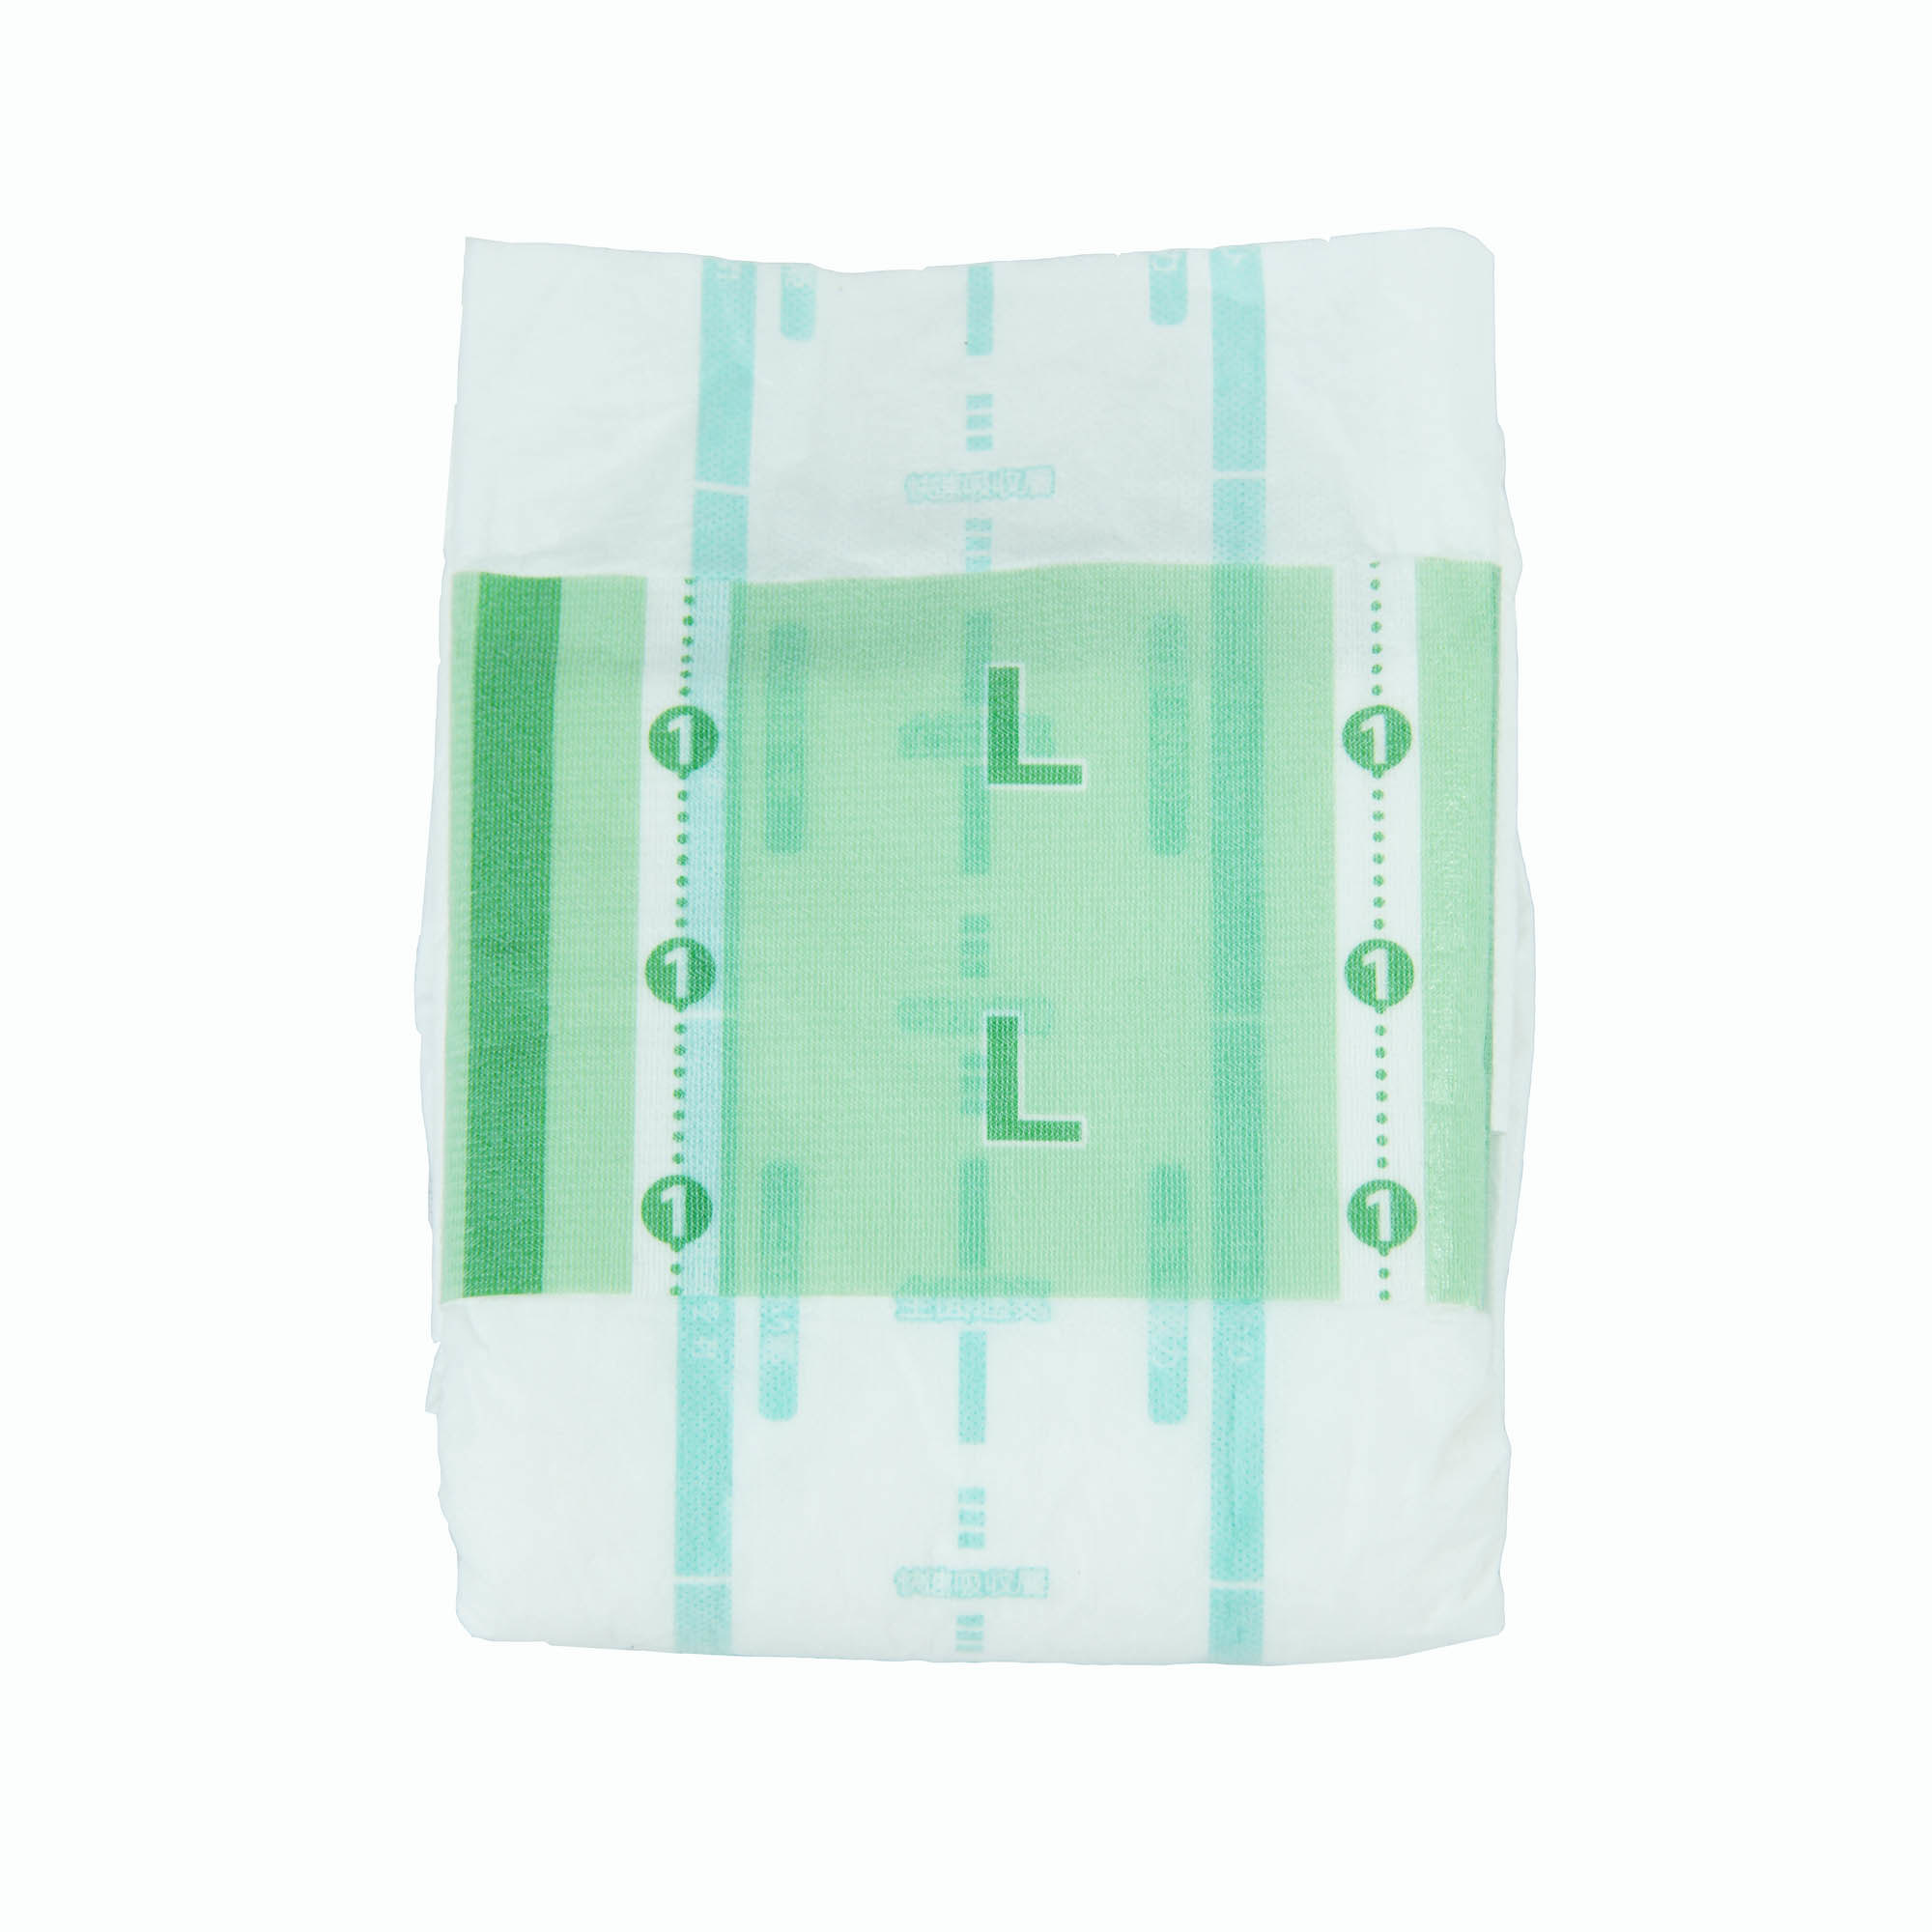 Wholesale Overnight Absorbency Disposable/Adult Nappy/Adult Brief/Adult Diaper for Men and Women/Home/Hospital/Medical/Nursing Home/Magic Tape/PE Film/M/L/XL